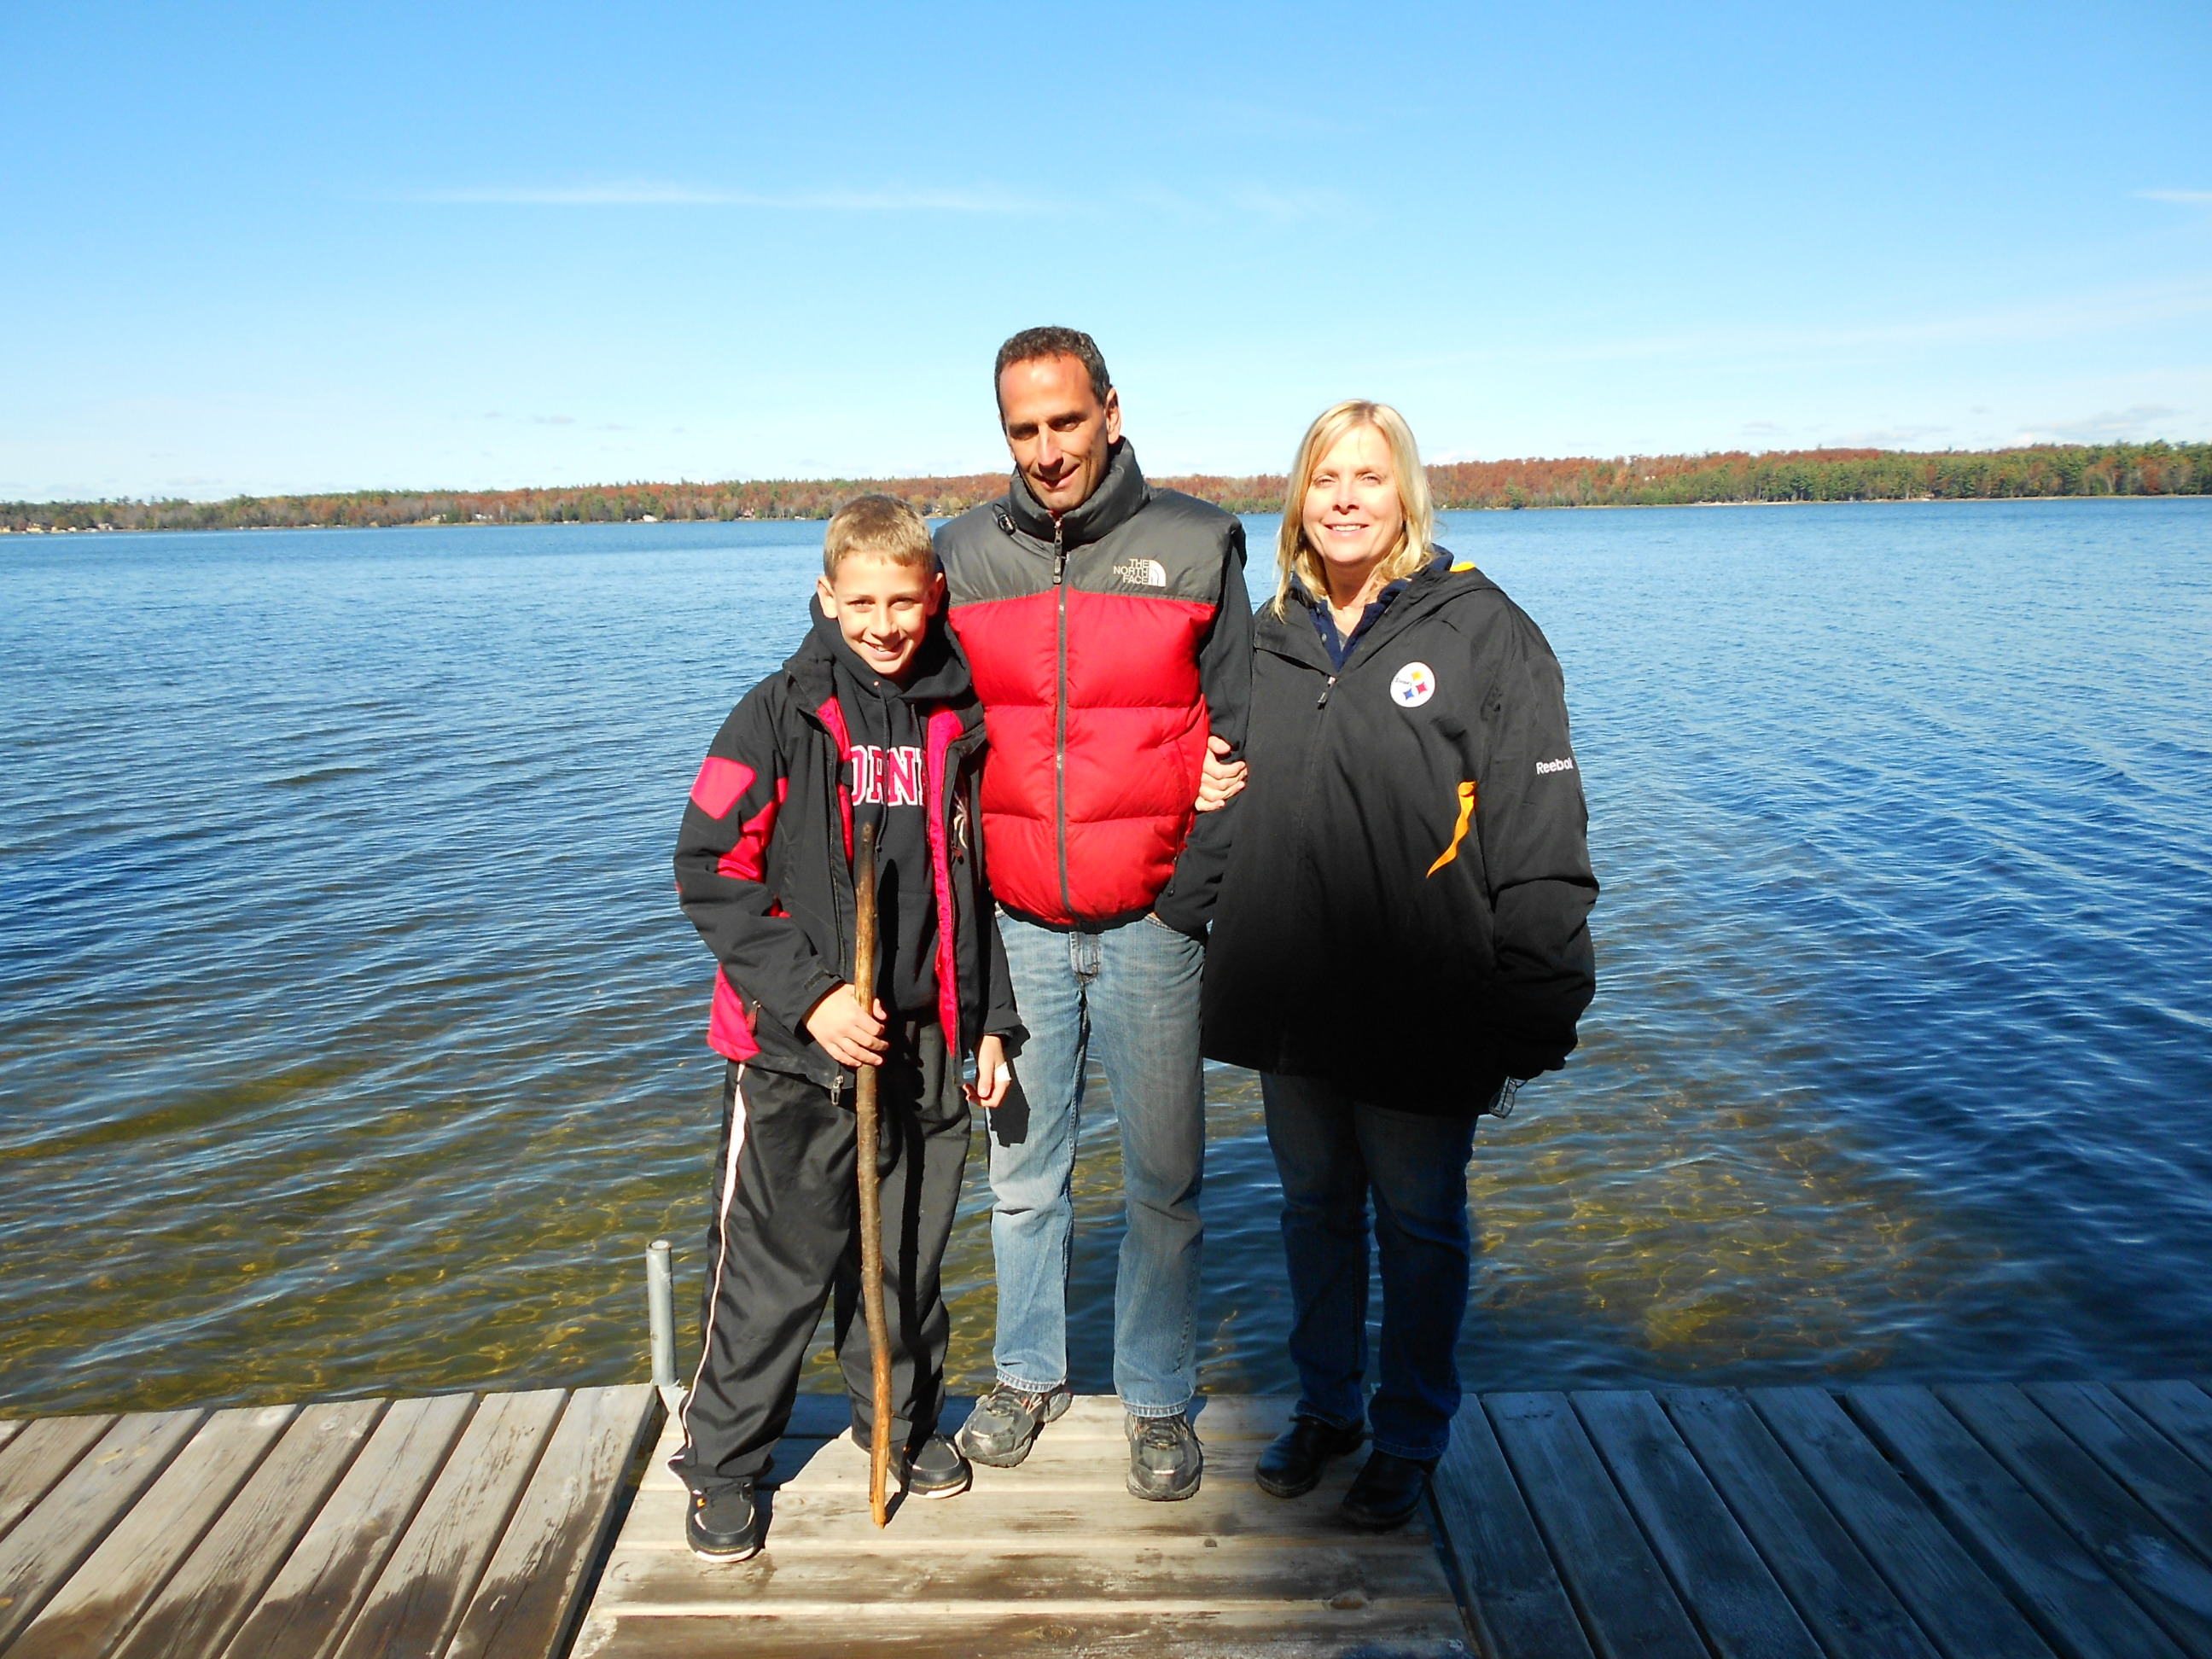 Please welcome Denise and Chuck - new St Germain cabin owners!